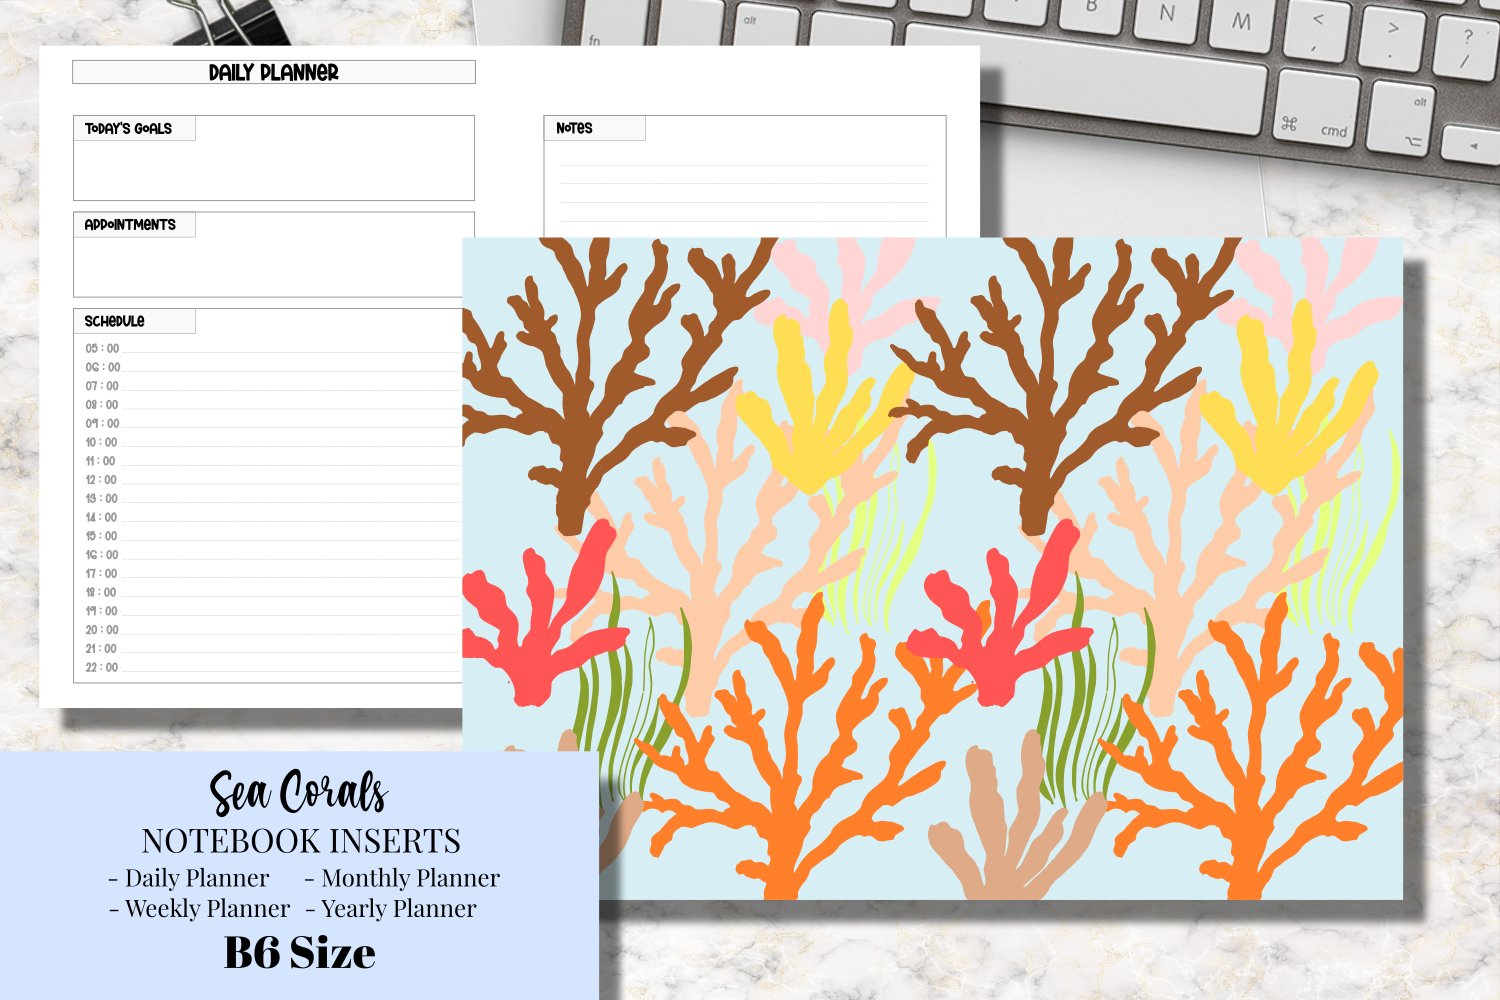 Sea Corals B6 Size Notebook Inserts Planner example image 1